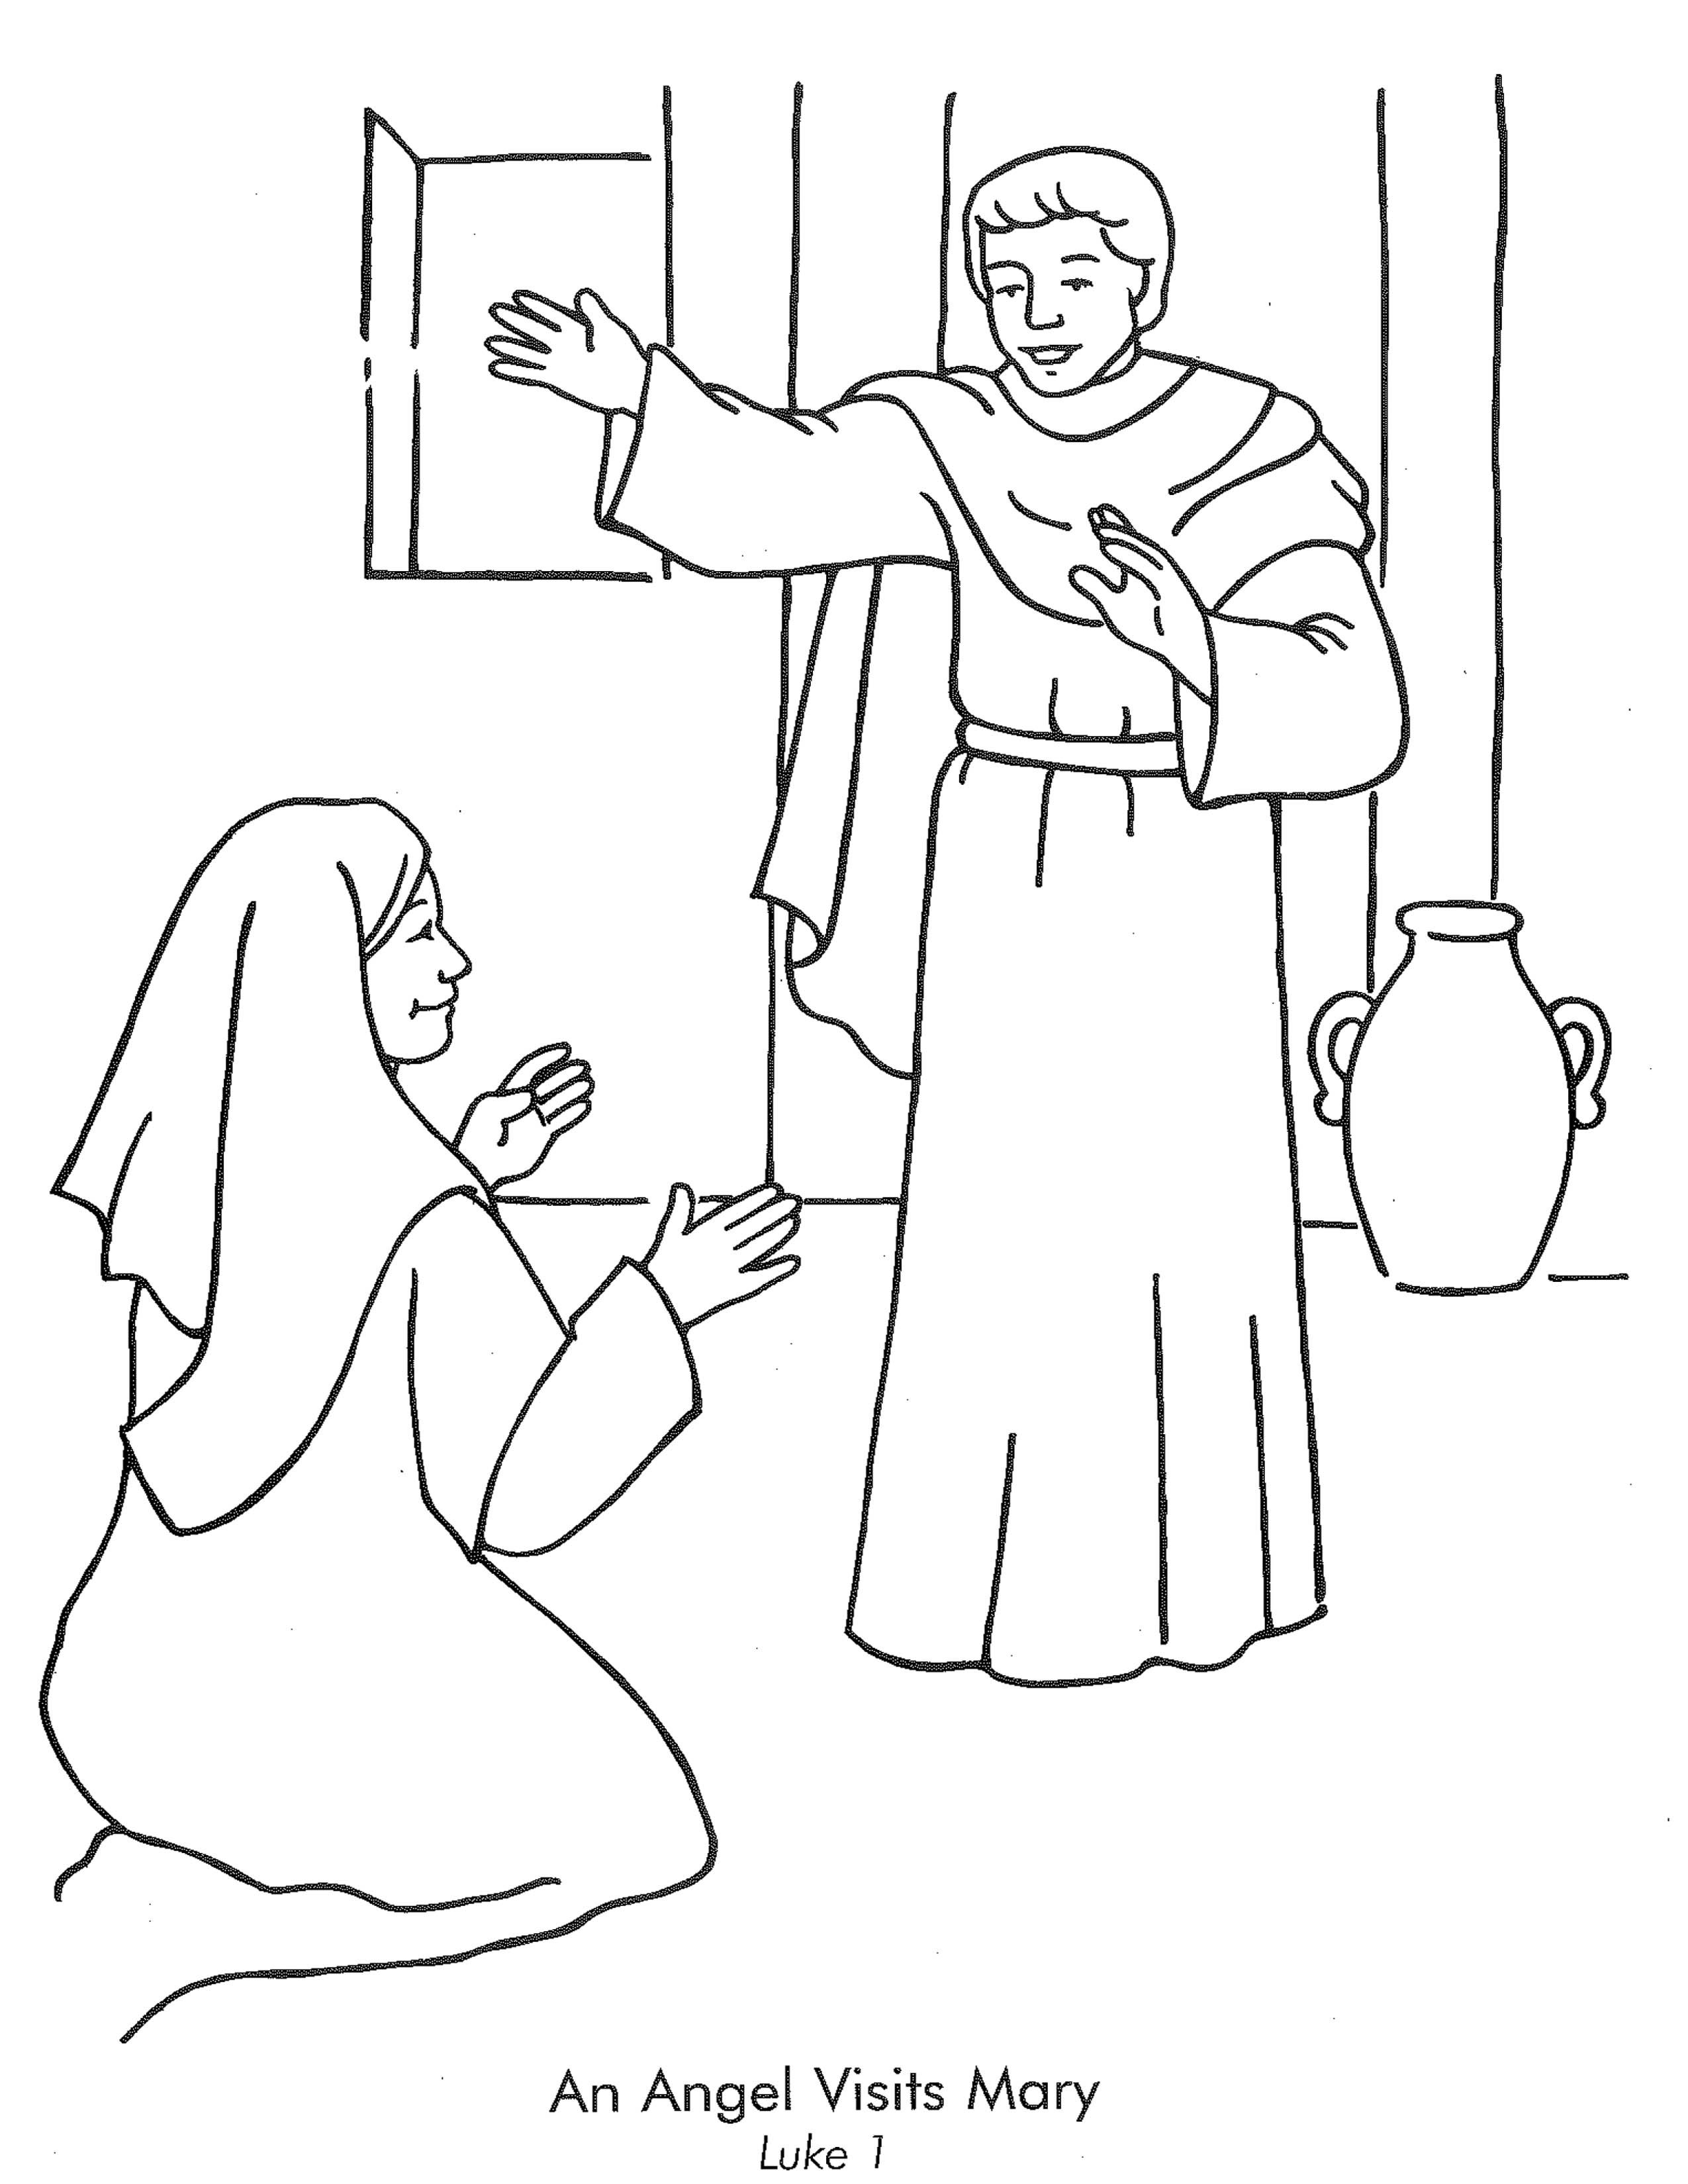 Biblical Images Of Angel Announcement To Mary